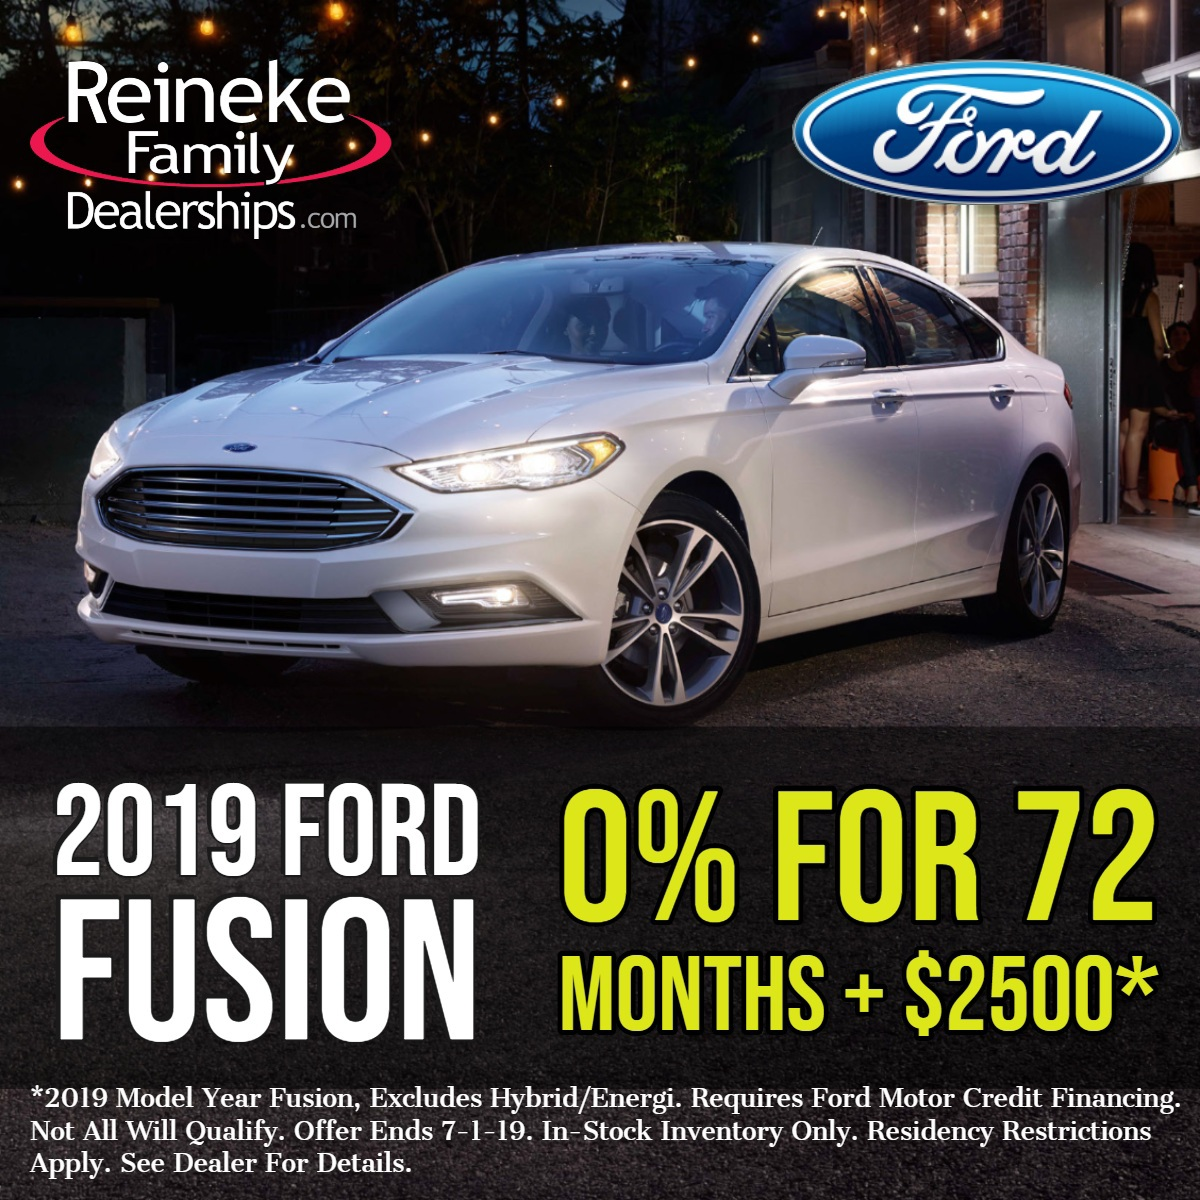 Lincoln Car Deals: Drive Reineke: New & Used Car Dealers, Ford, Lincoln